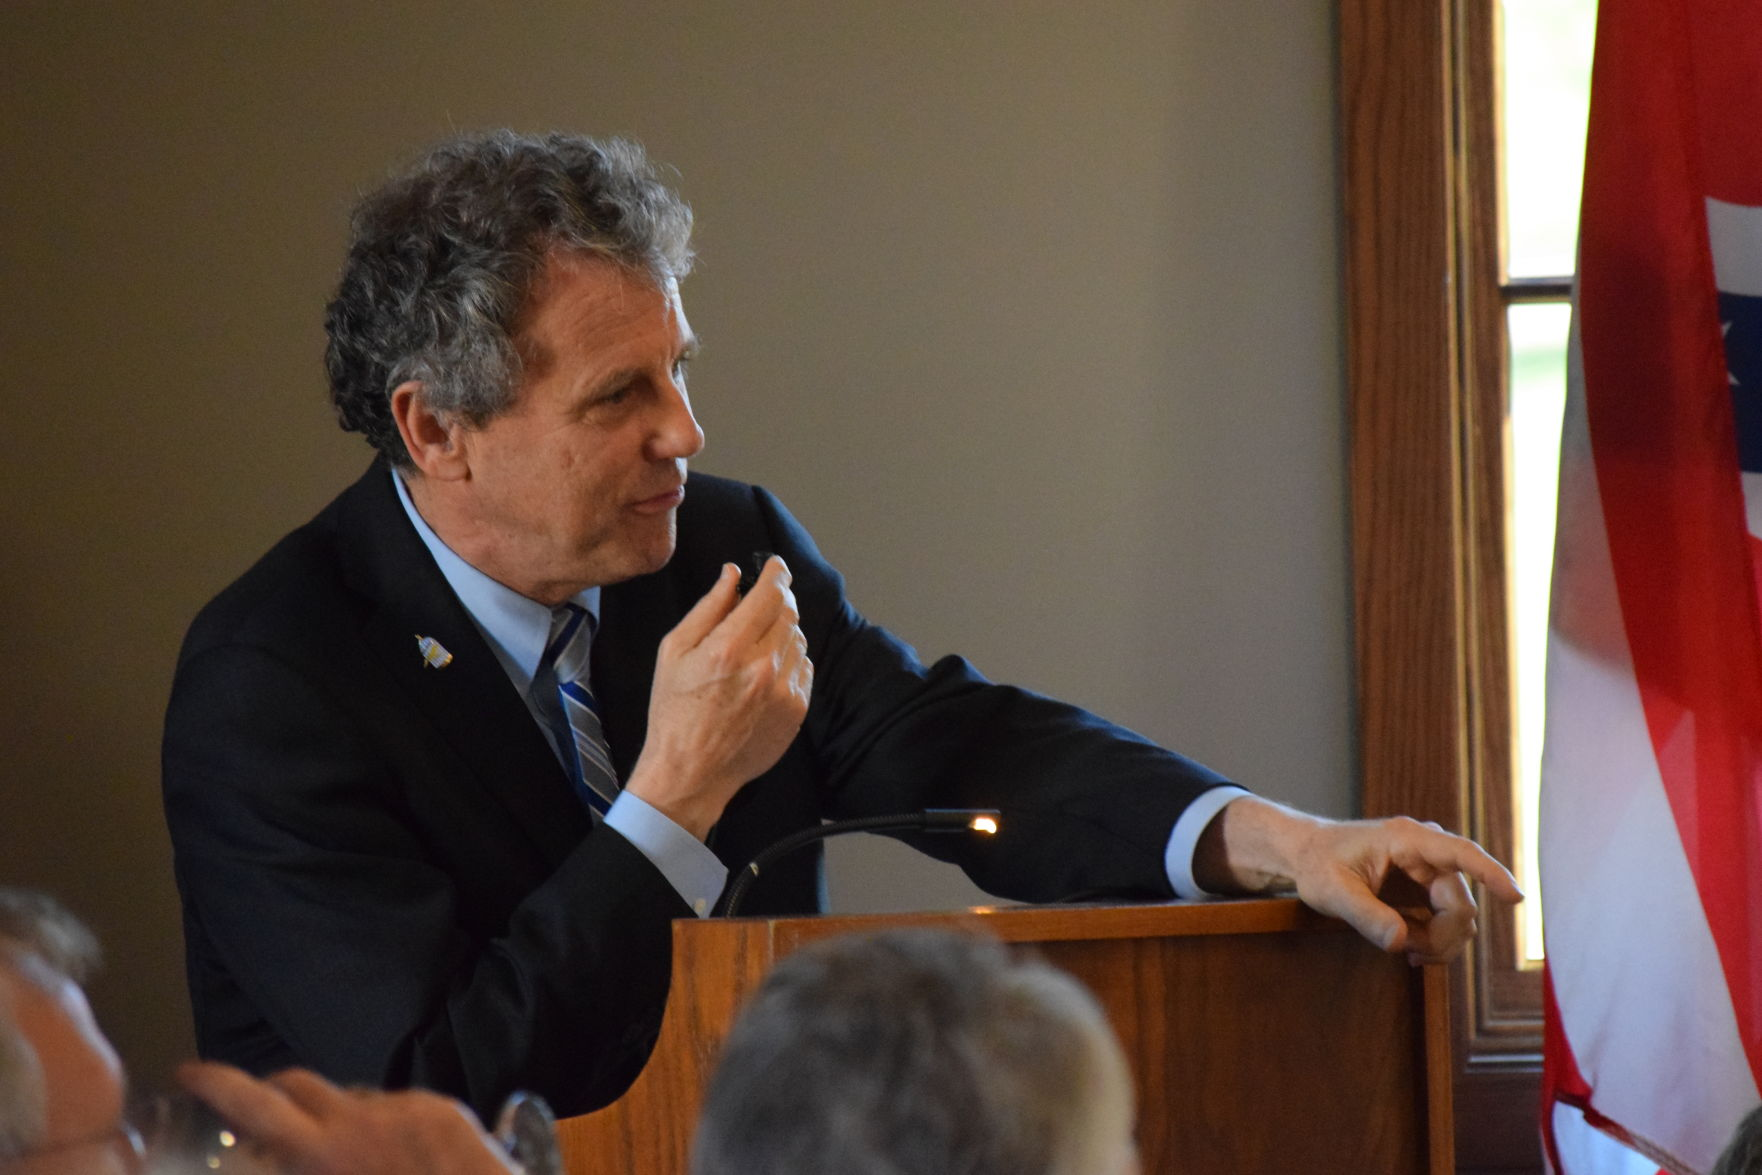 Sherrod Brown: Working to protect those who protect us